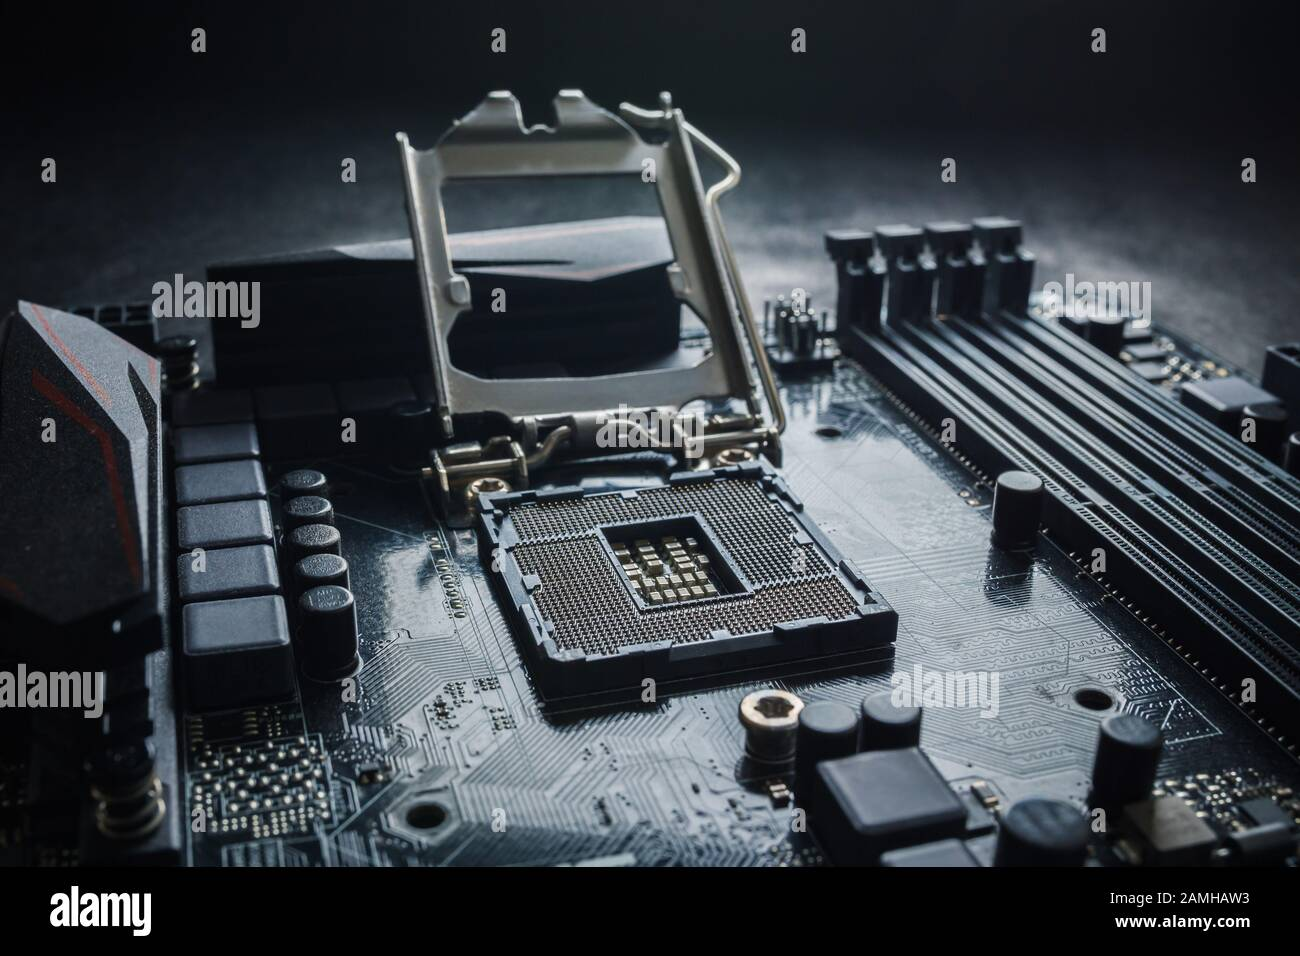 Close-Up of CPU Socket on a Modern Computer Motherboard. Electronic Small Component Details. PC repair or upgrade concept. Stock Photo